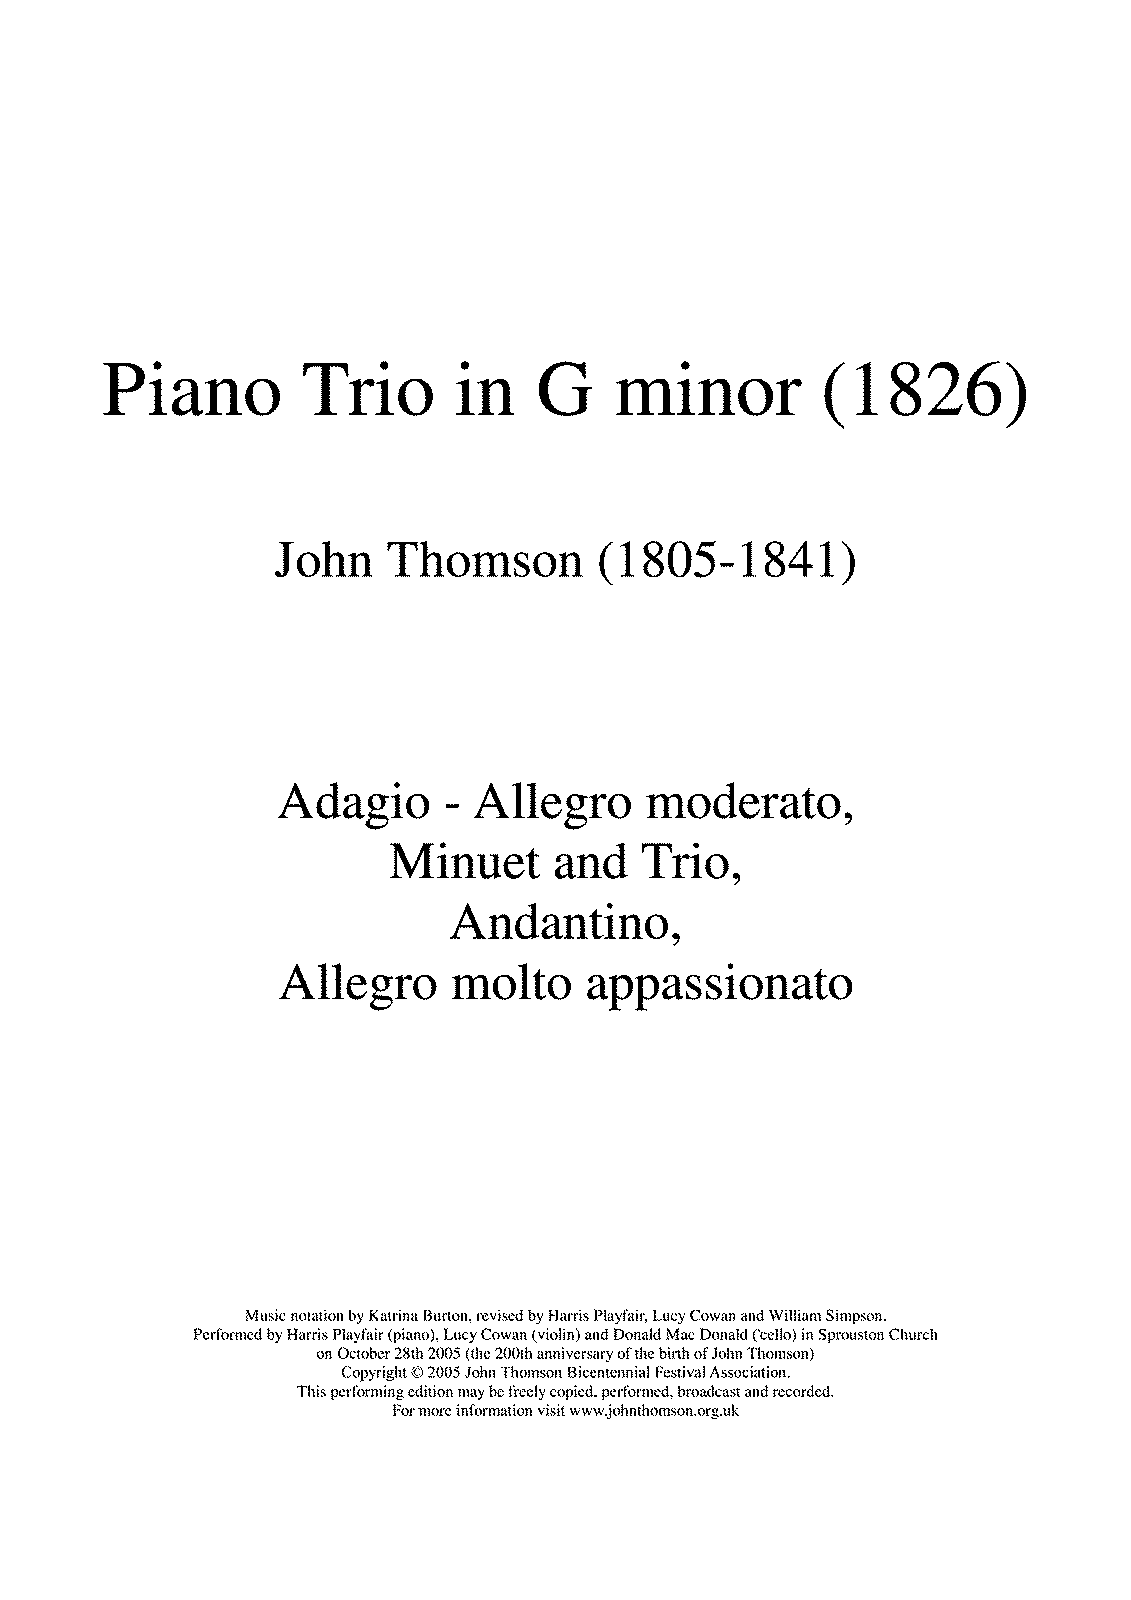 PMLP24225-IMSLP09872-Piano trio in G minor - Full Score.pdf